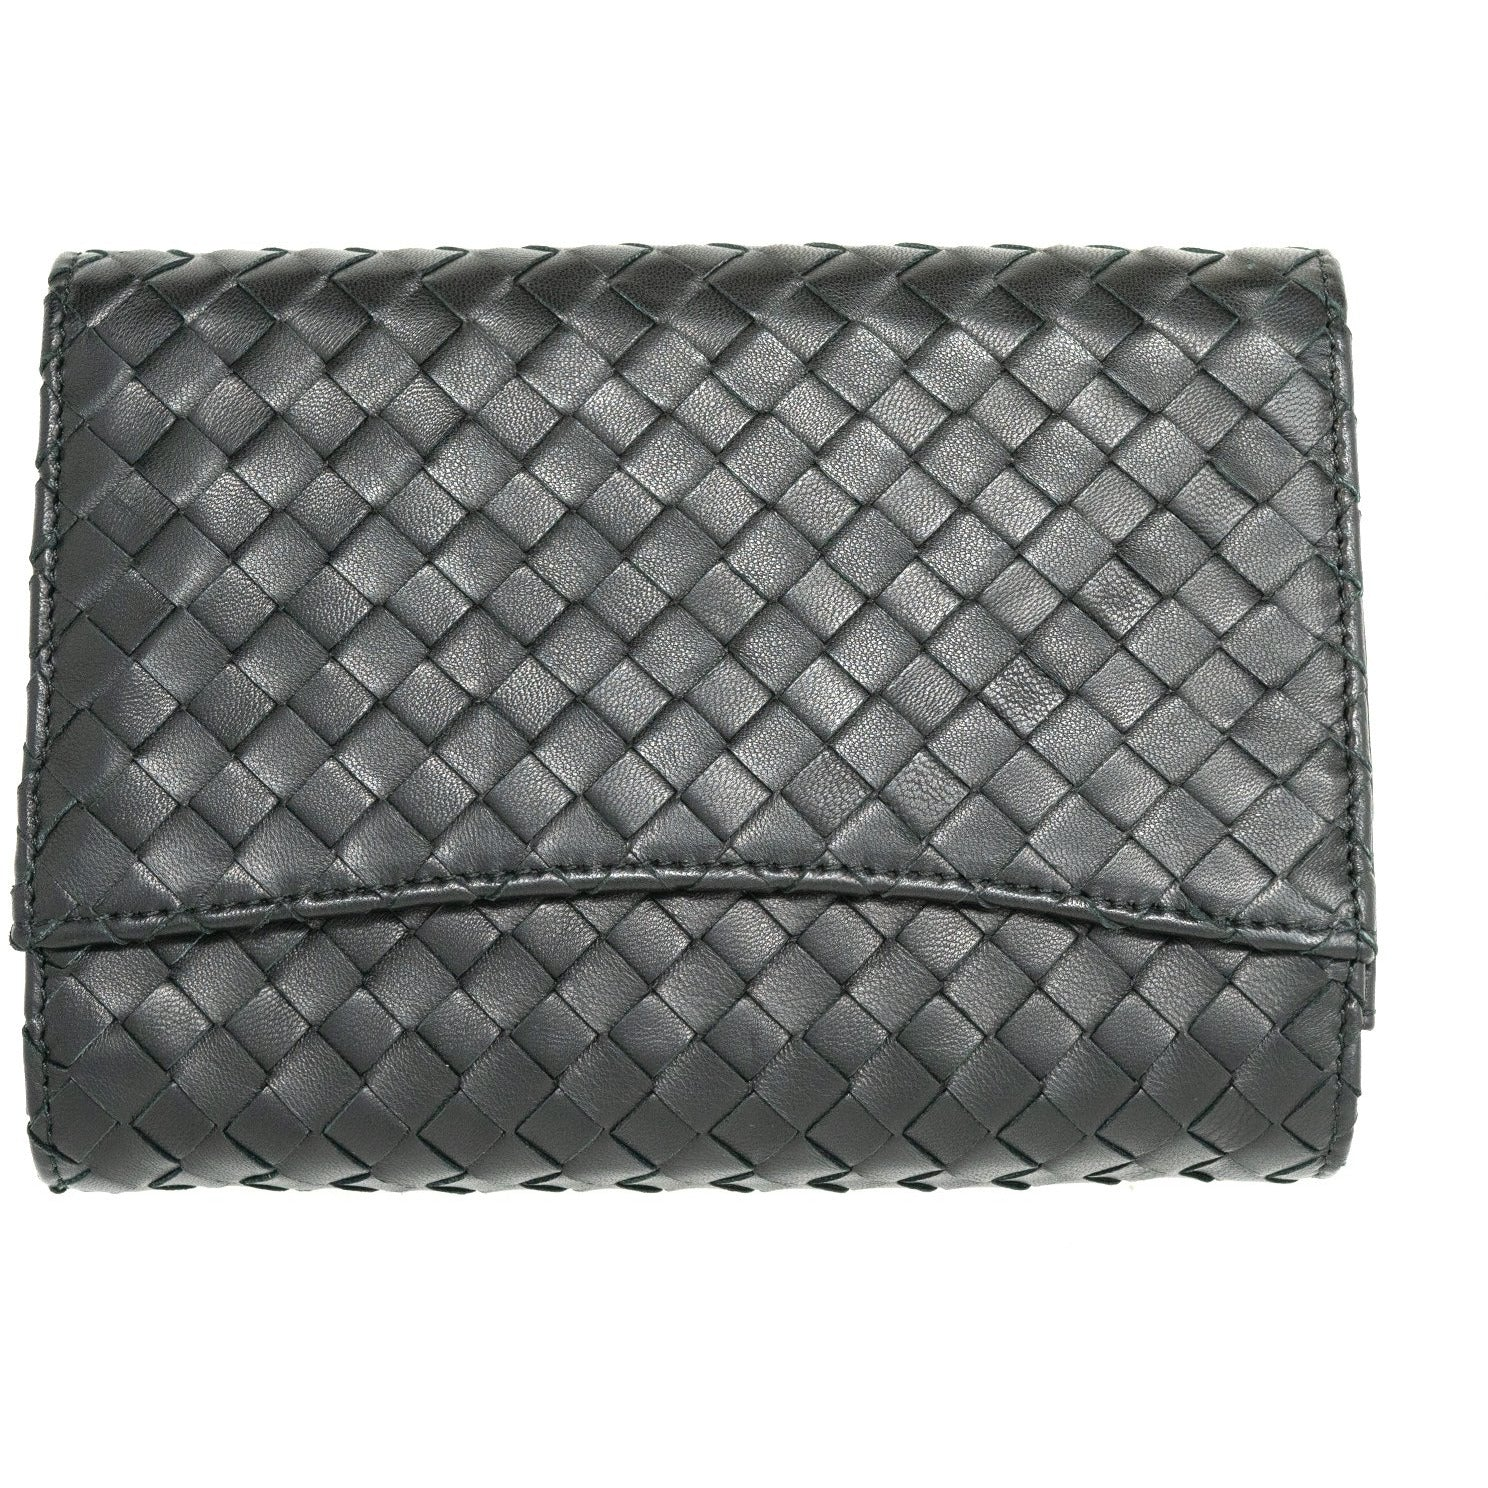 JT283 6040 Intrecciato Leather Clutch - New Spring Summer 2020 Collection